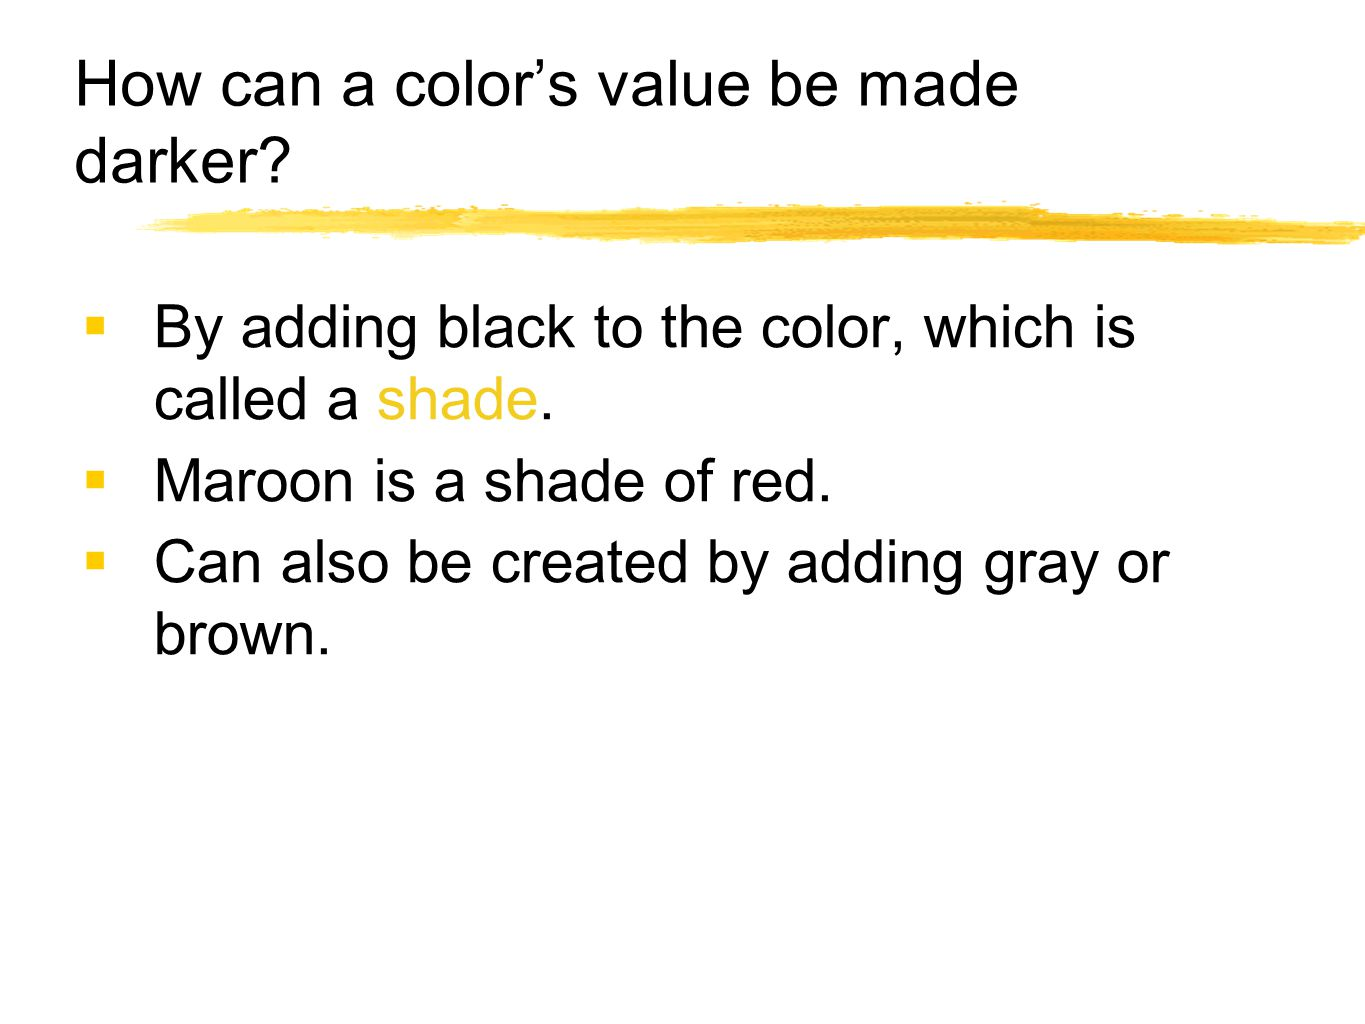 How can a color's value be made darker